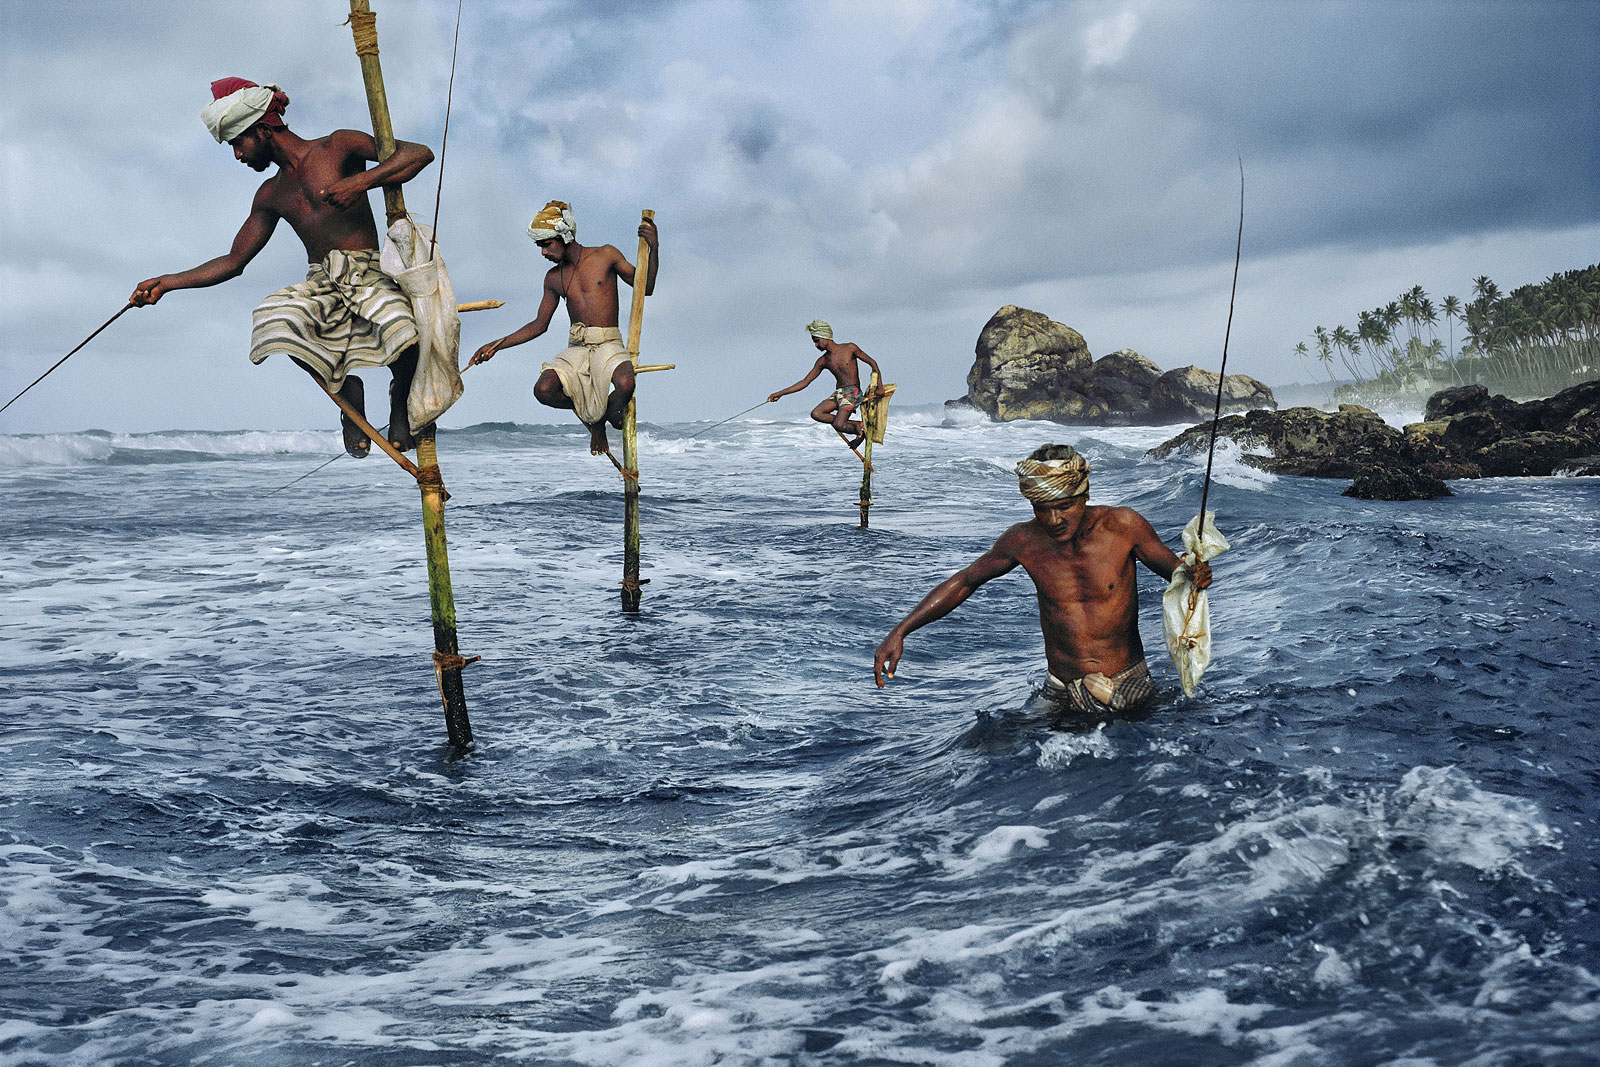 foto: © Steve McCurry - Fishermen, Weligama, South Coast, Sri Lanka, 1995